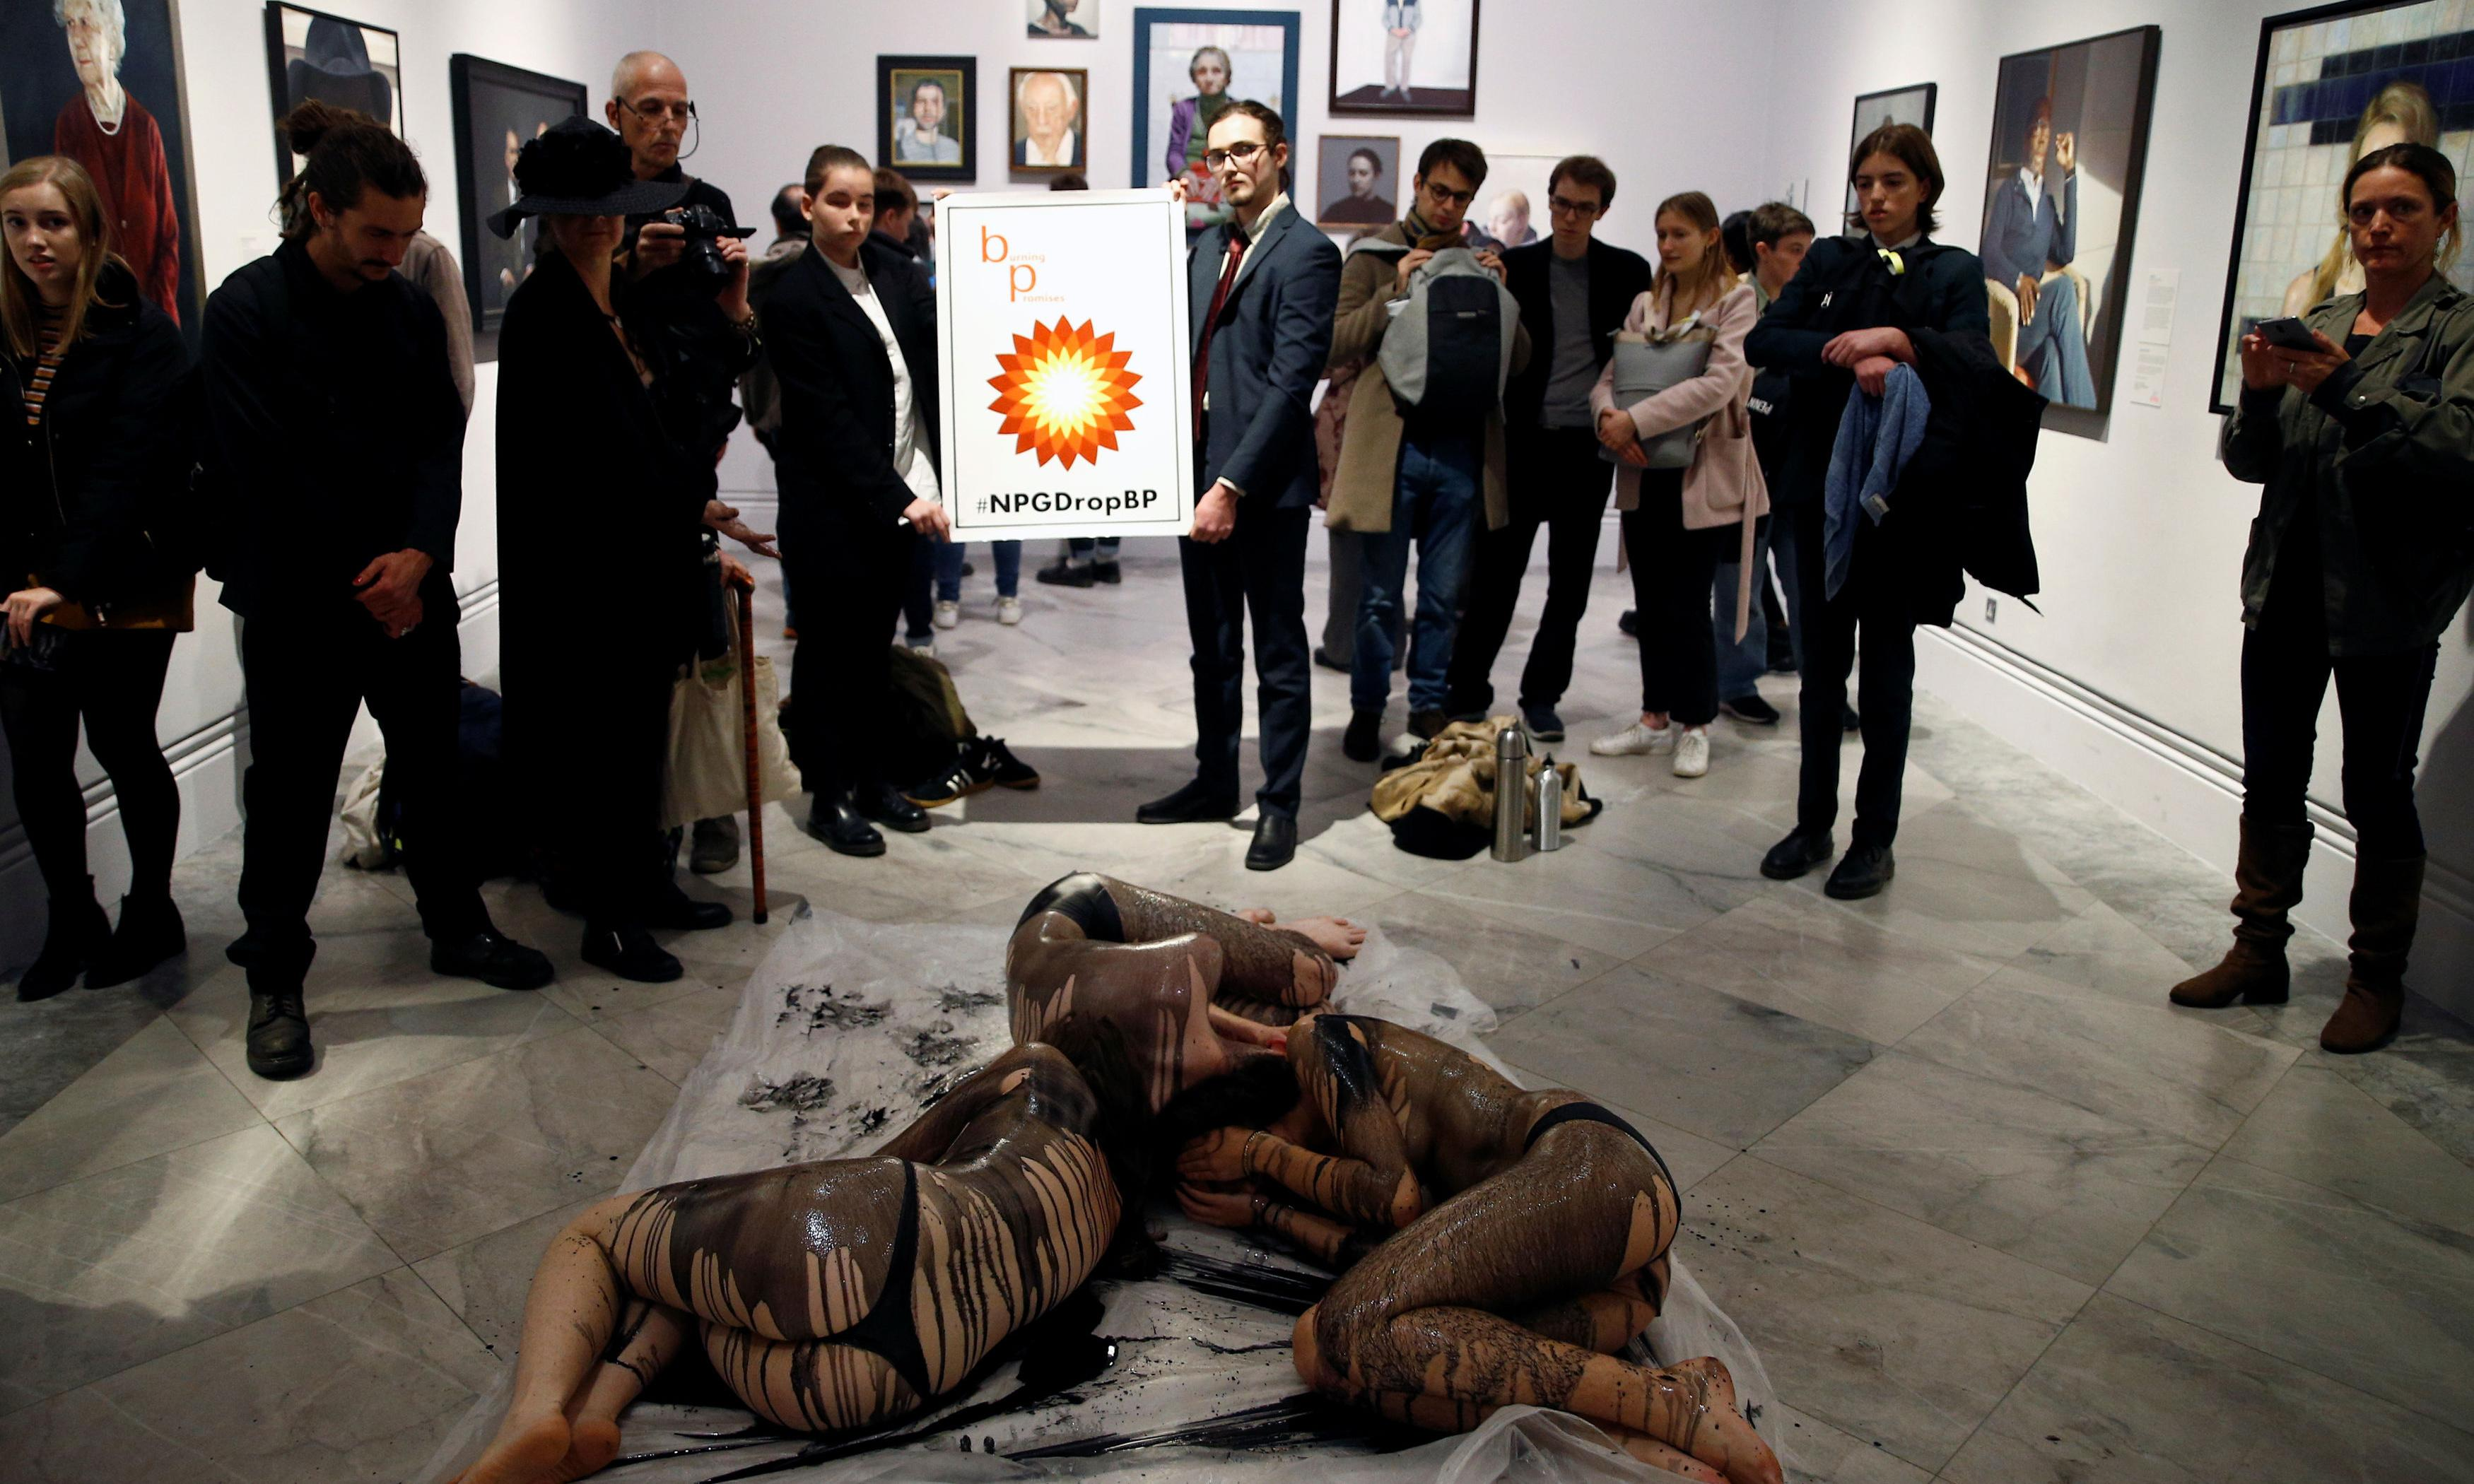 Semi-naked activists protest against National Portrait Gallery's links to BP